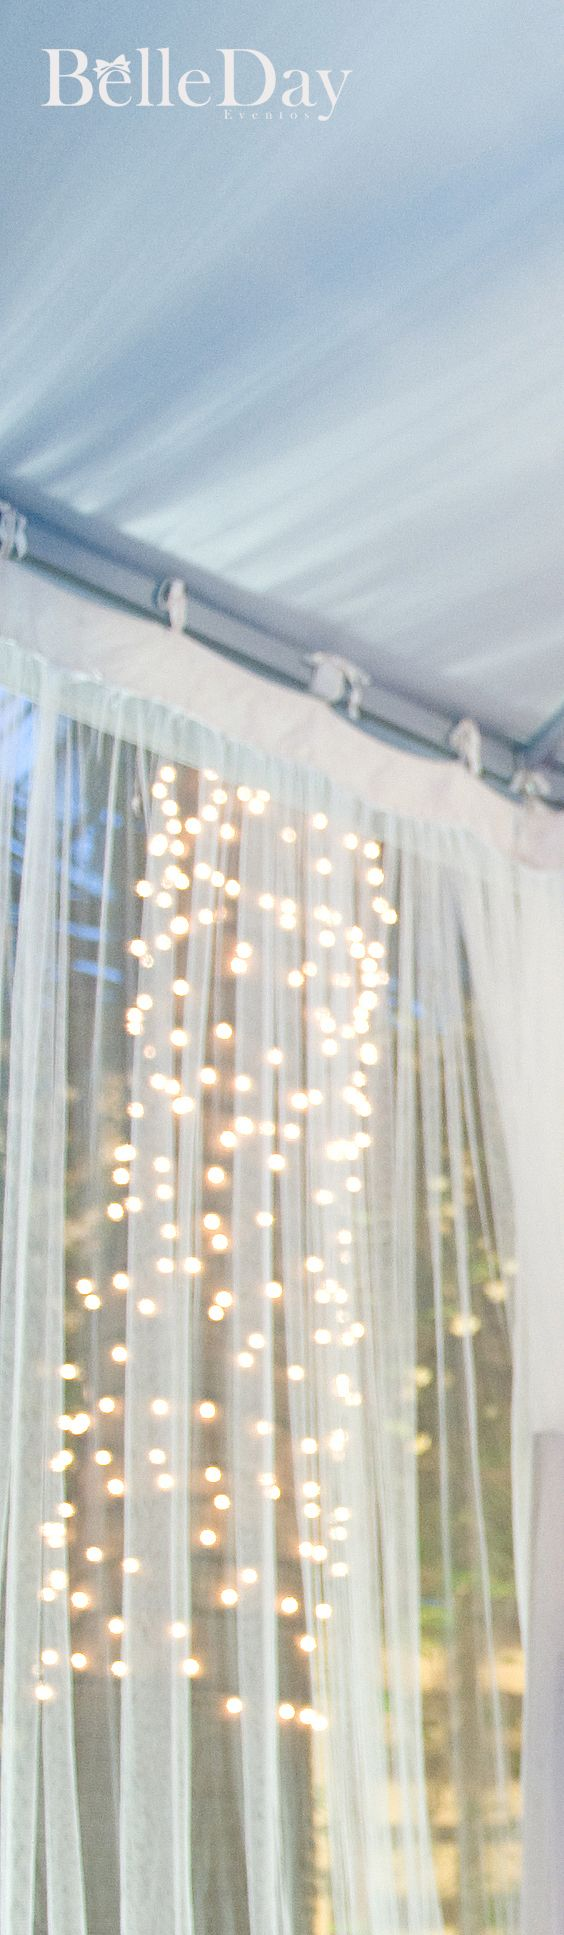 101 best images about craft show ideas on pinterest for Curtain display ideas